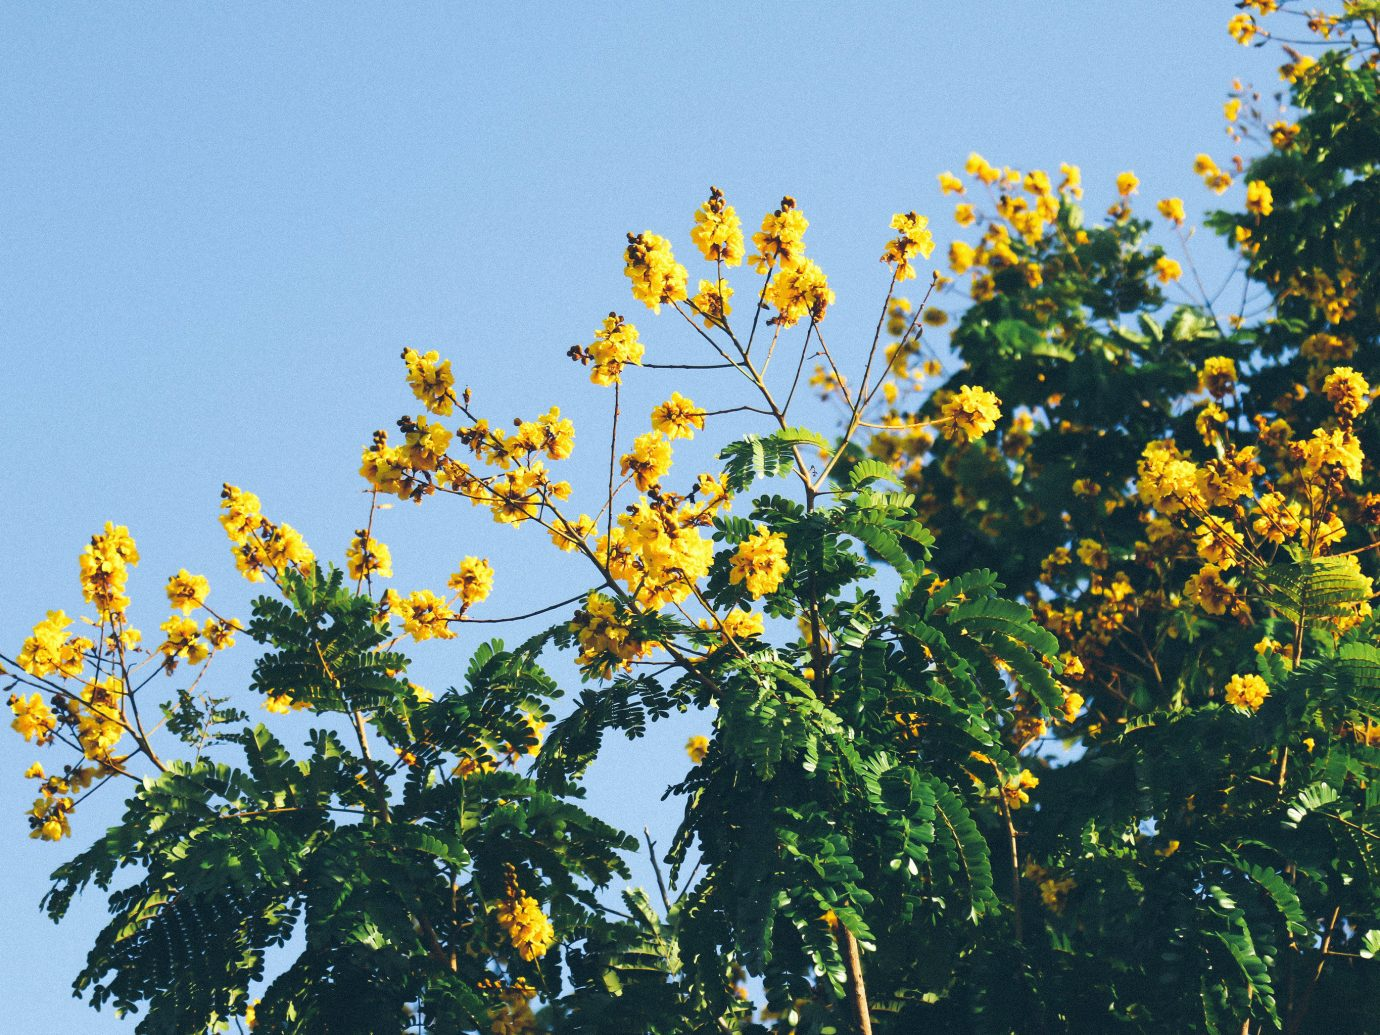 Trip Ideas tree sky outdoor yellow flower flora plant botany leaf branch land plant sunlight blossom produce flowering plant wildflower rapeseed shrub maidenhair tree